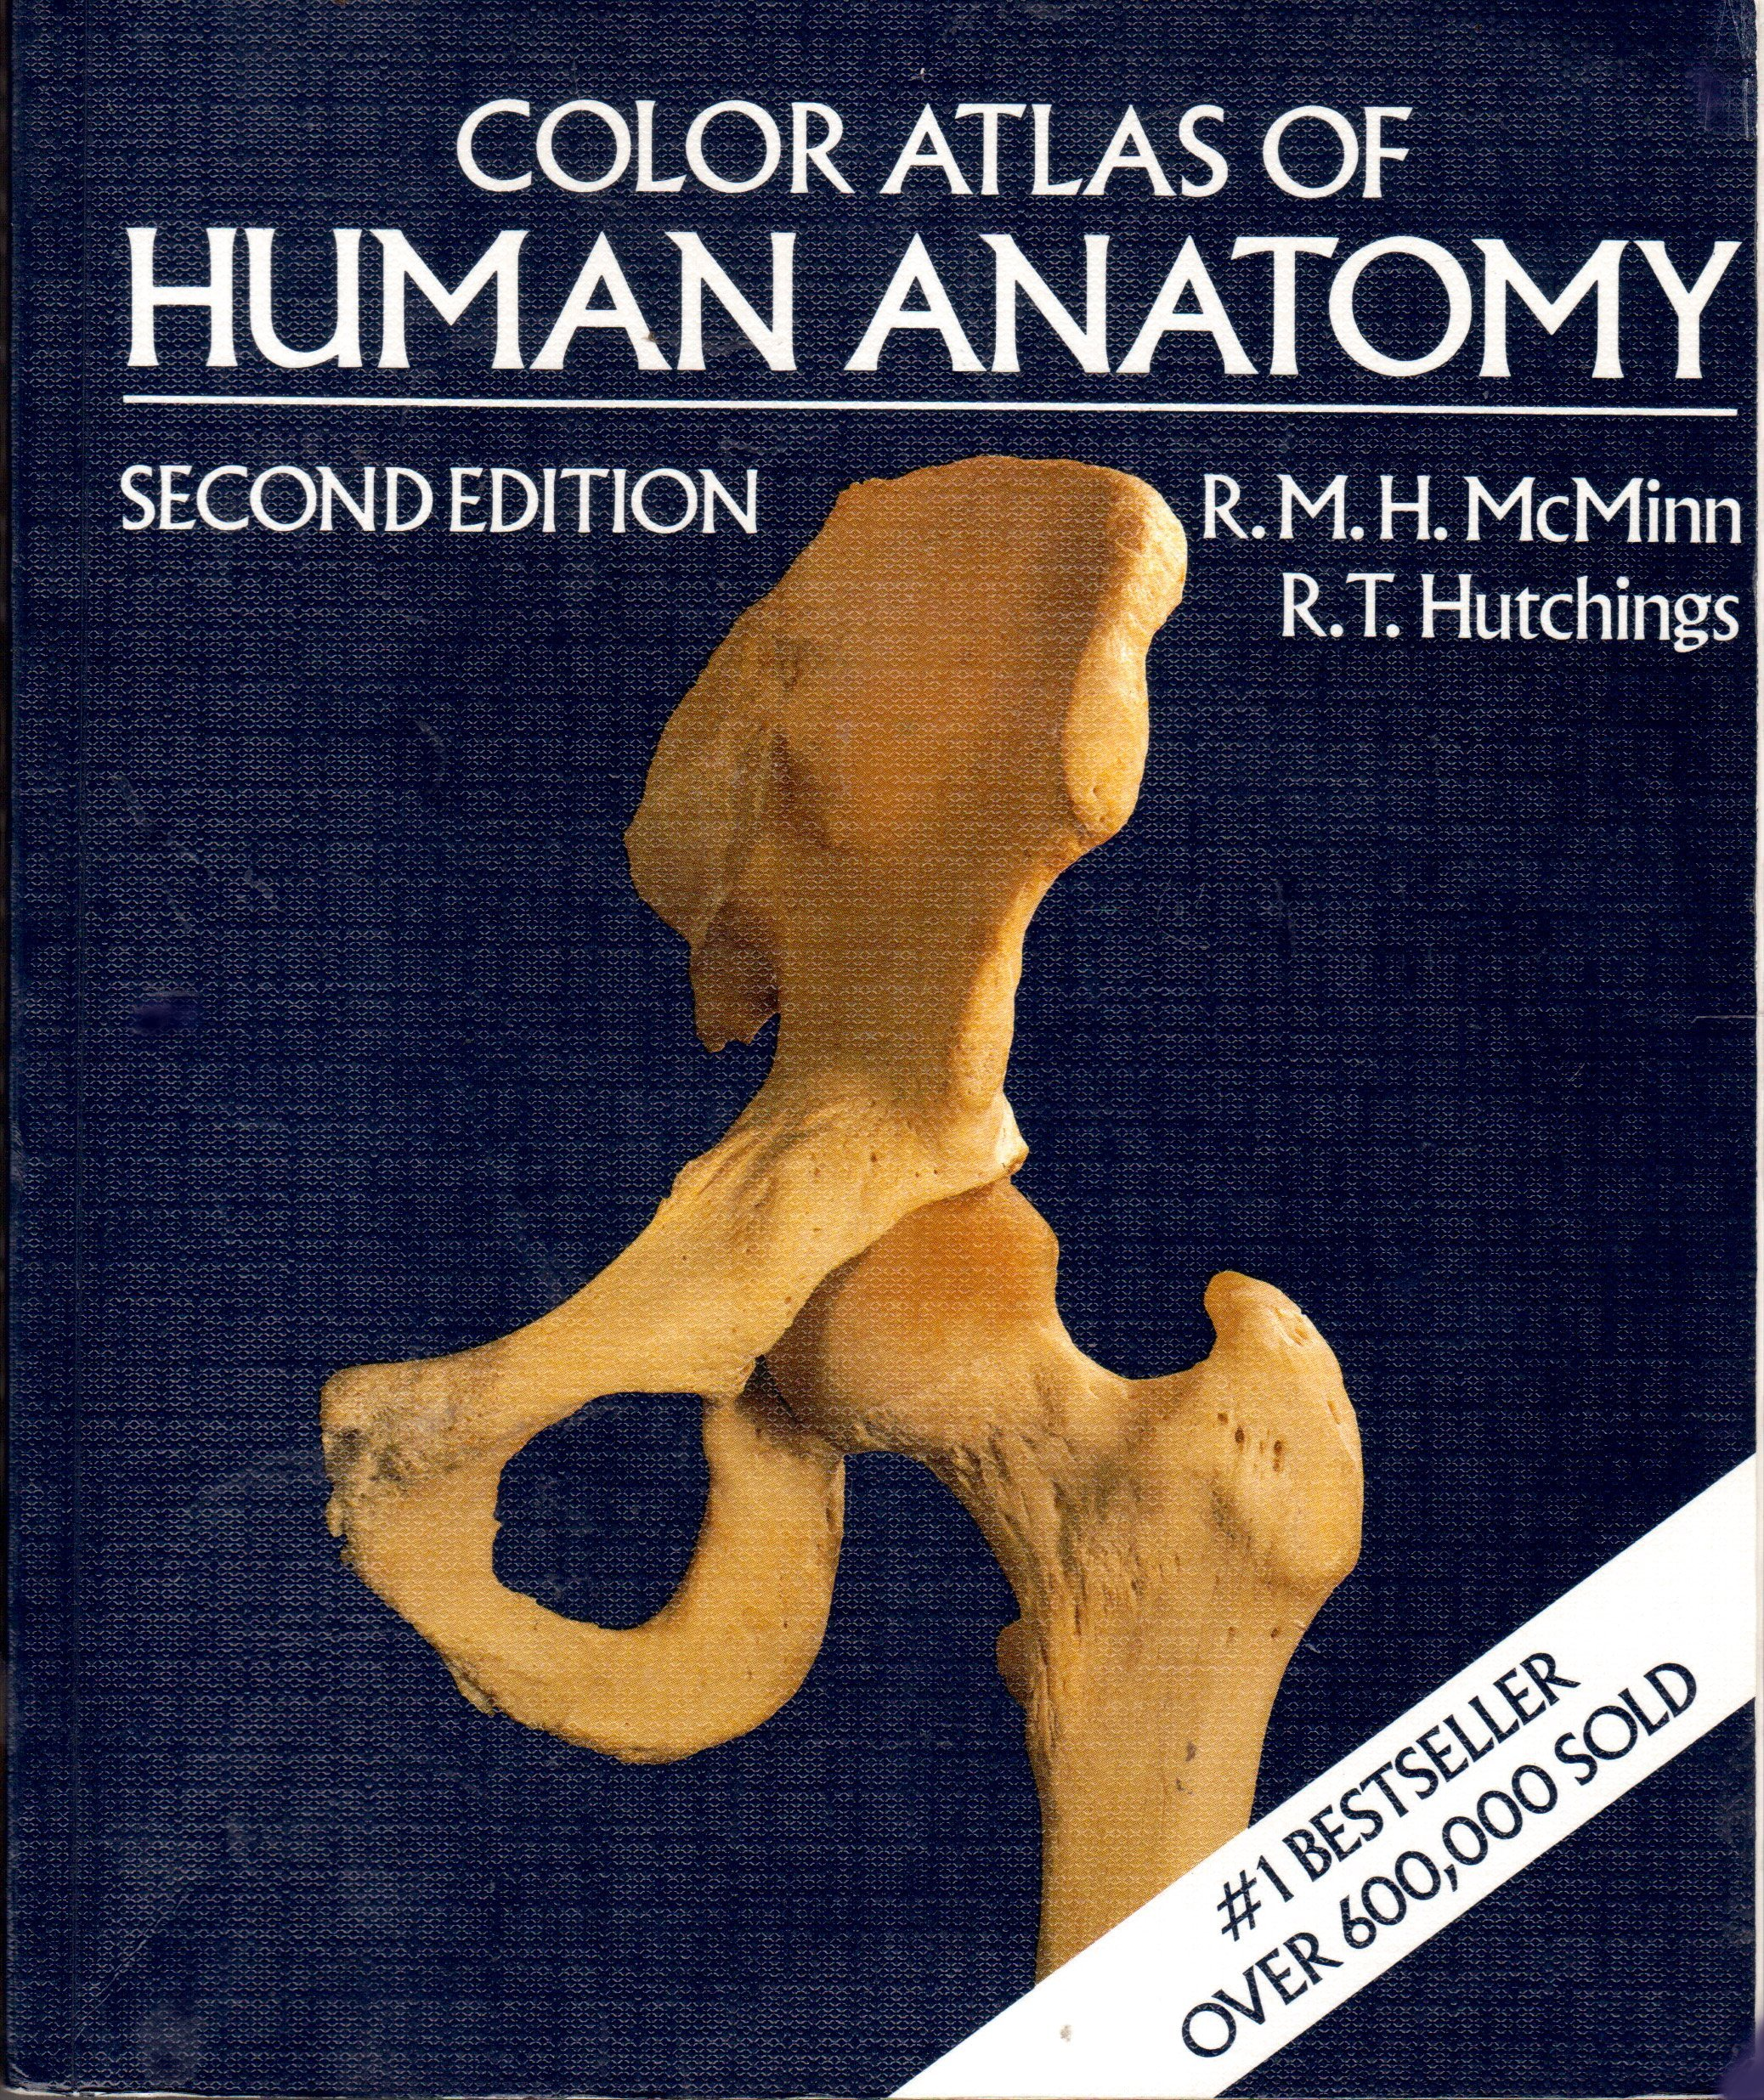 A Color Atlas Of Human Anatomy H R M Mcminn R T Hutchings